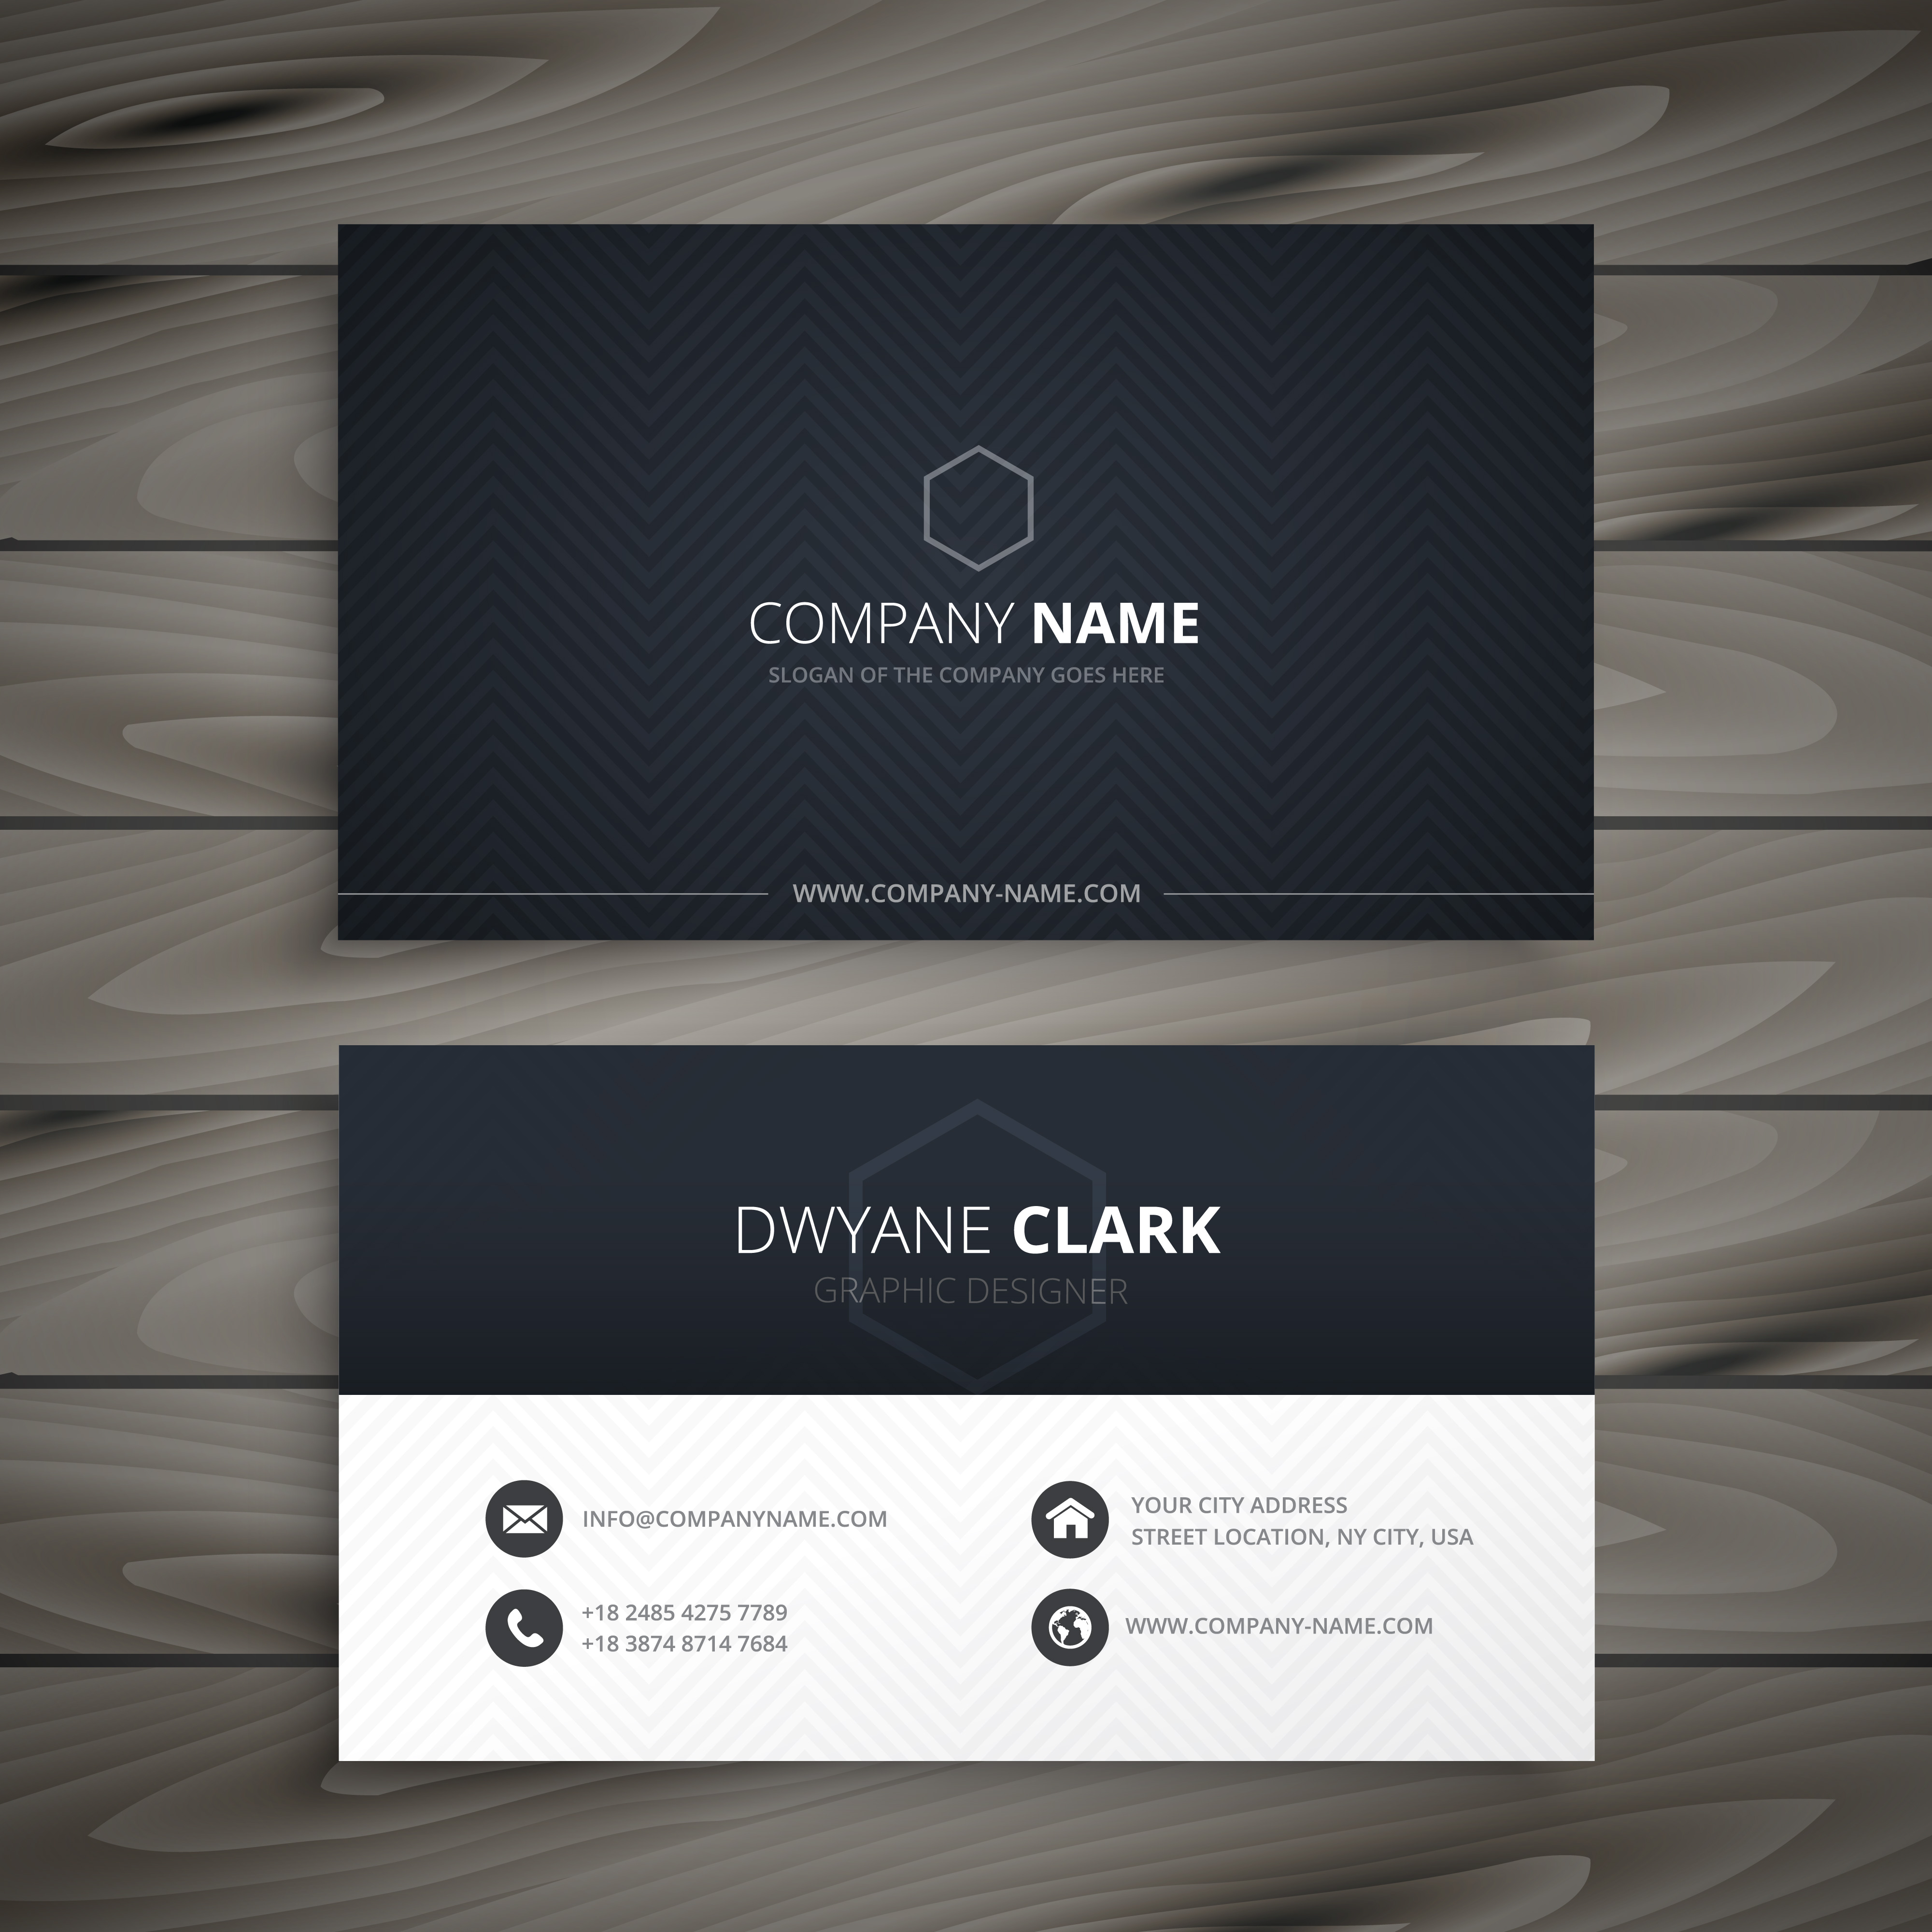 Clean dark business card business vector design illustration clean dark business card business vector design illustration download free vector art stock graphics images colourmoves